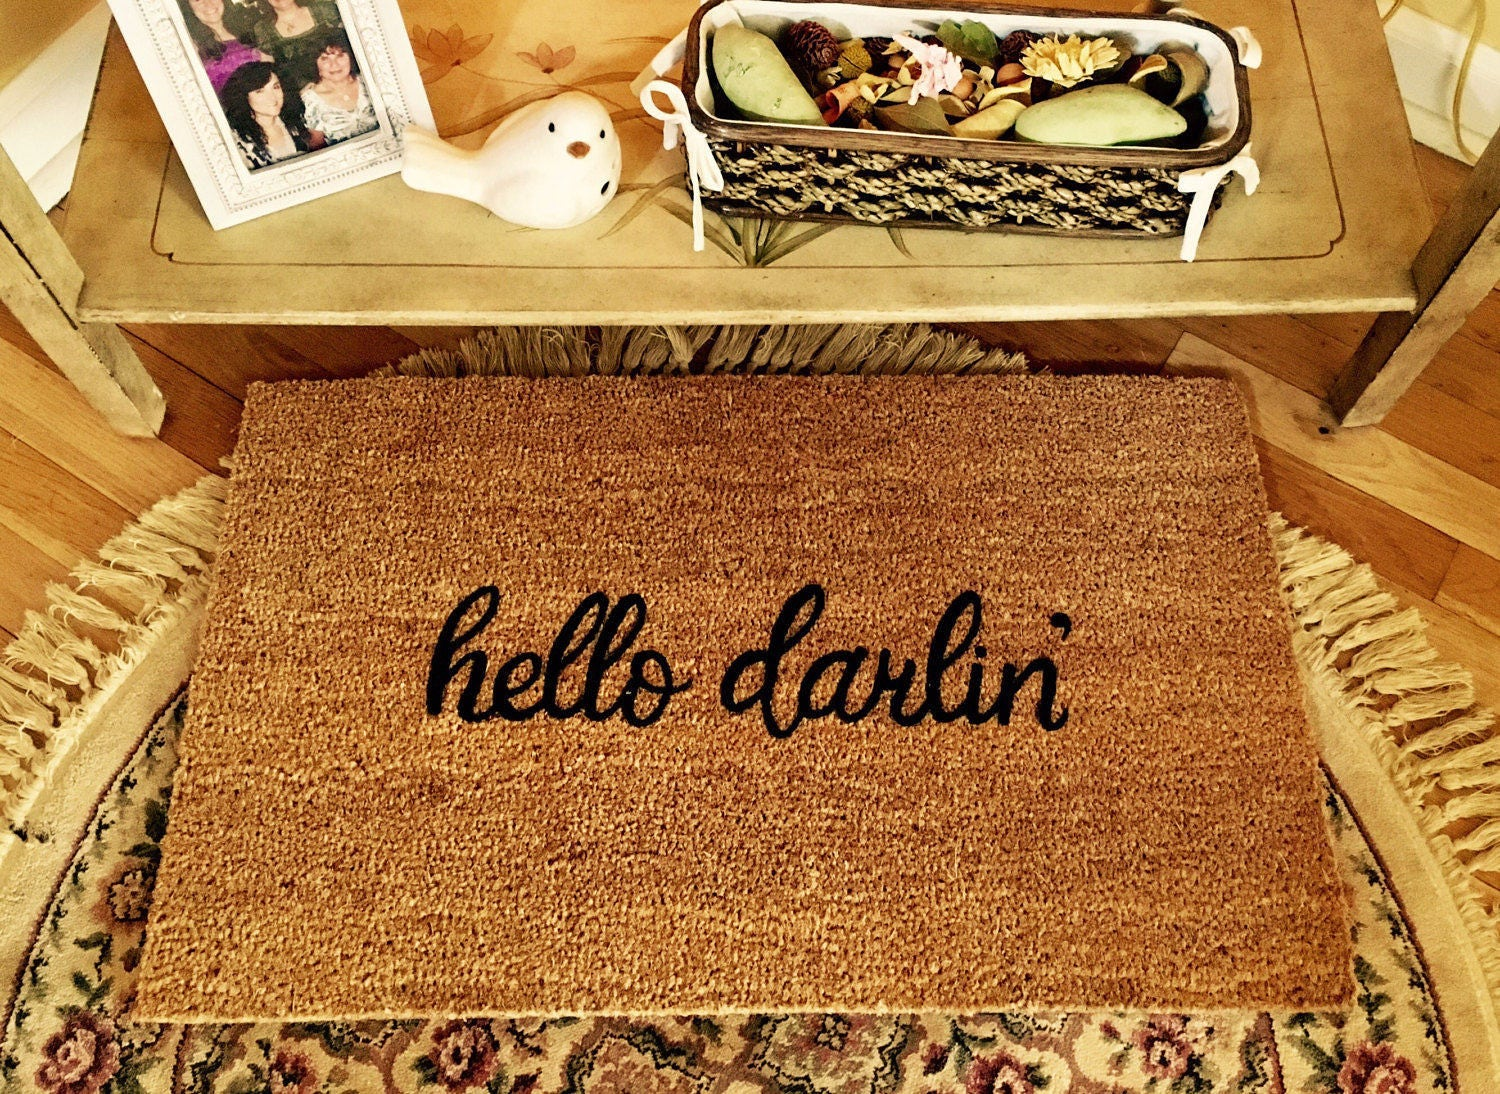 Floor mats kenya - Custom Door Mat Hello Darlin Door Mat Door Mats With Sayings Cute Door Mat Painted Doormat Doormats Outdoor Mats Welcome Mats